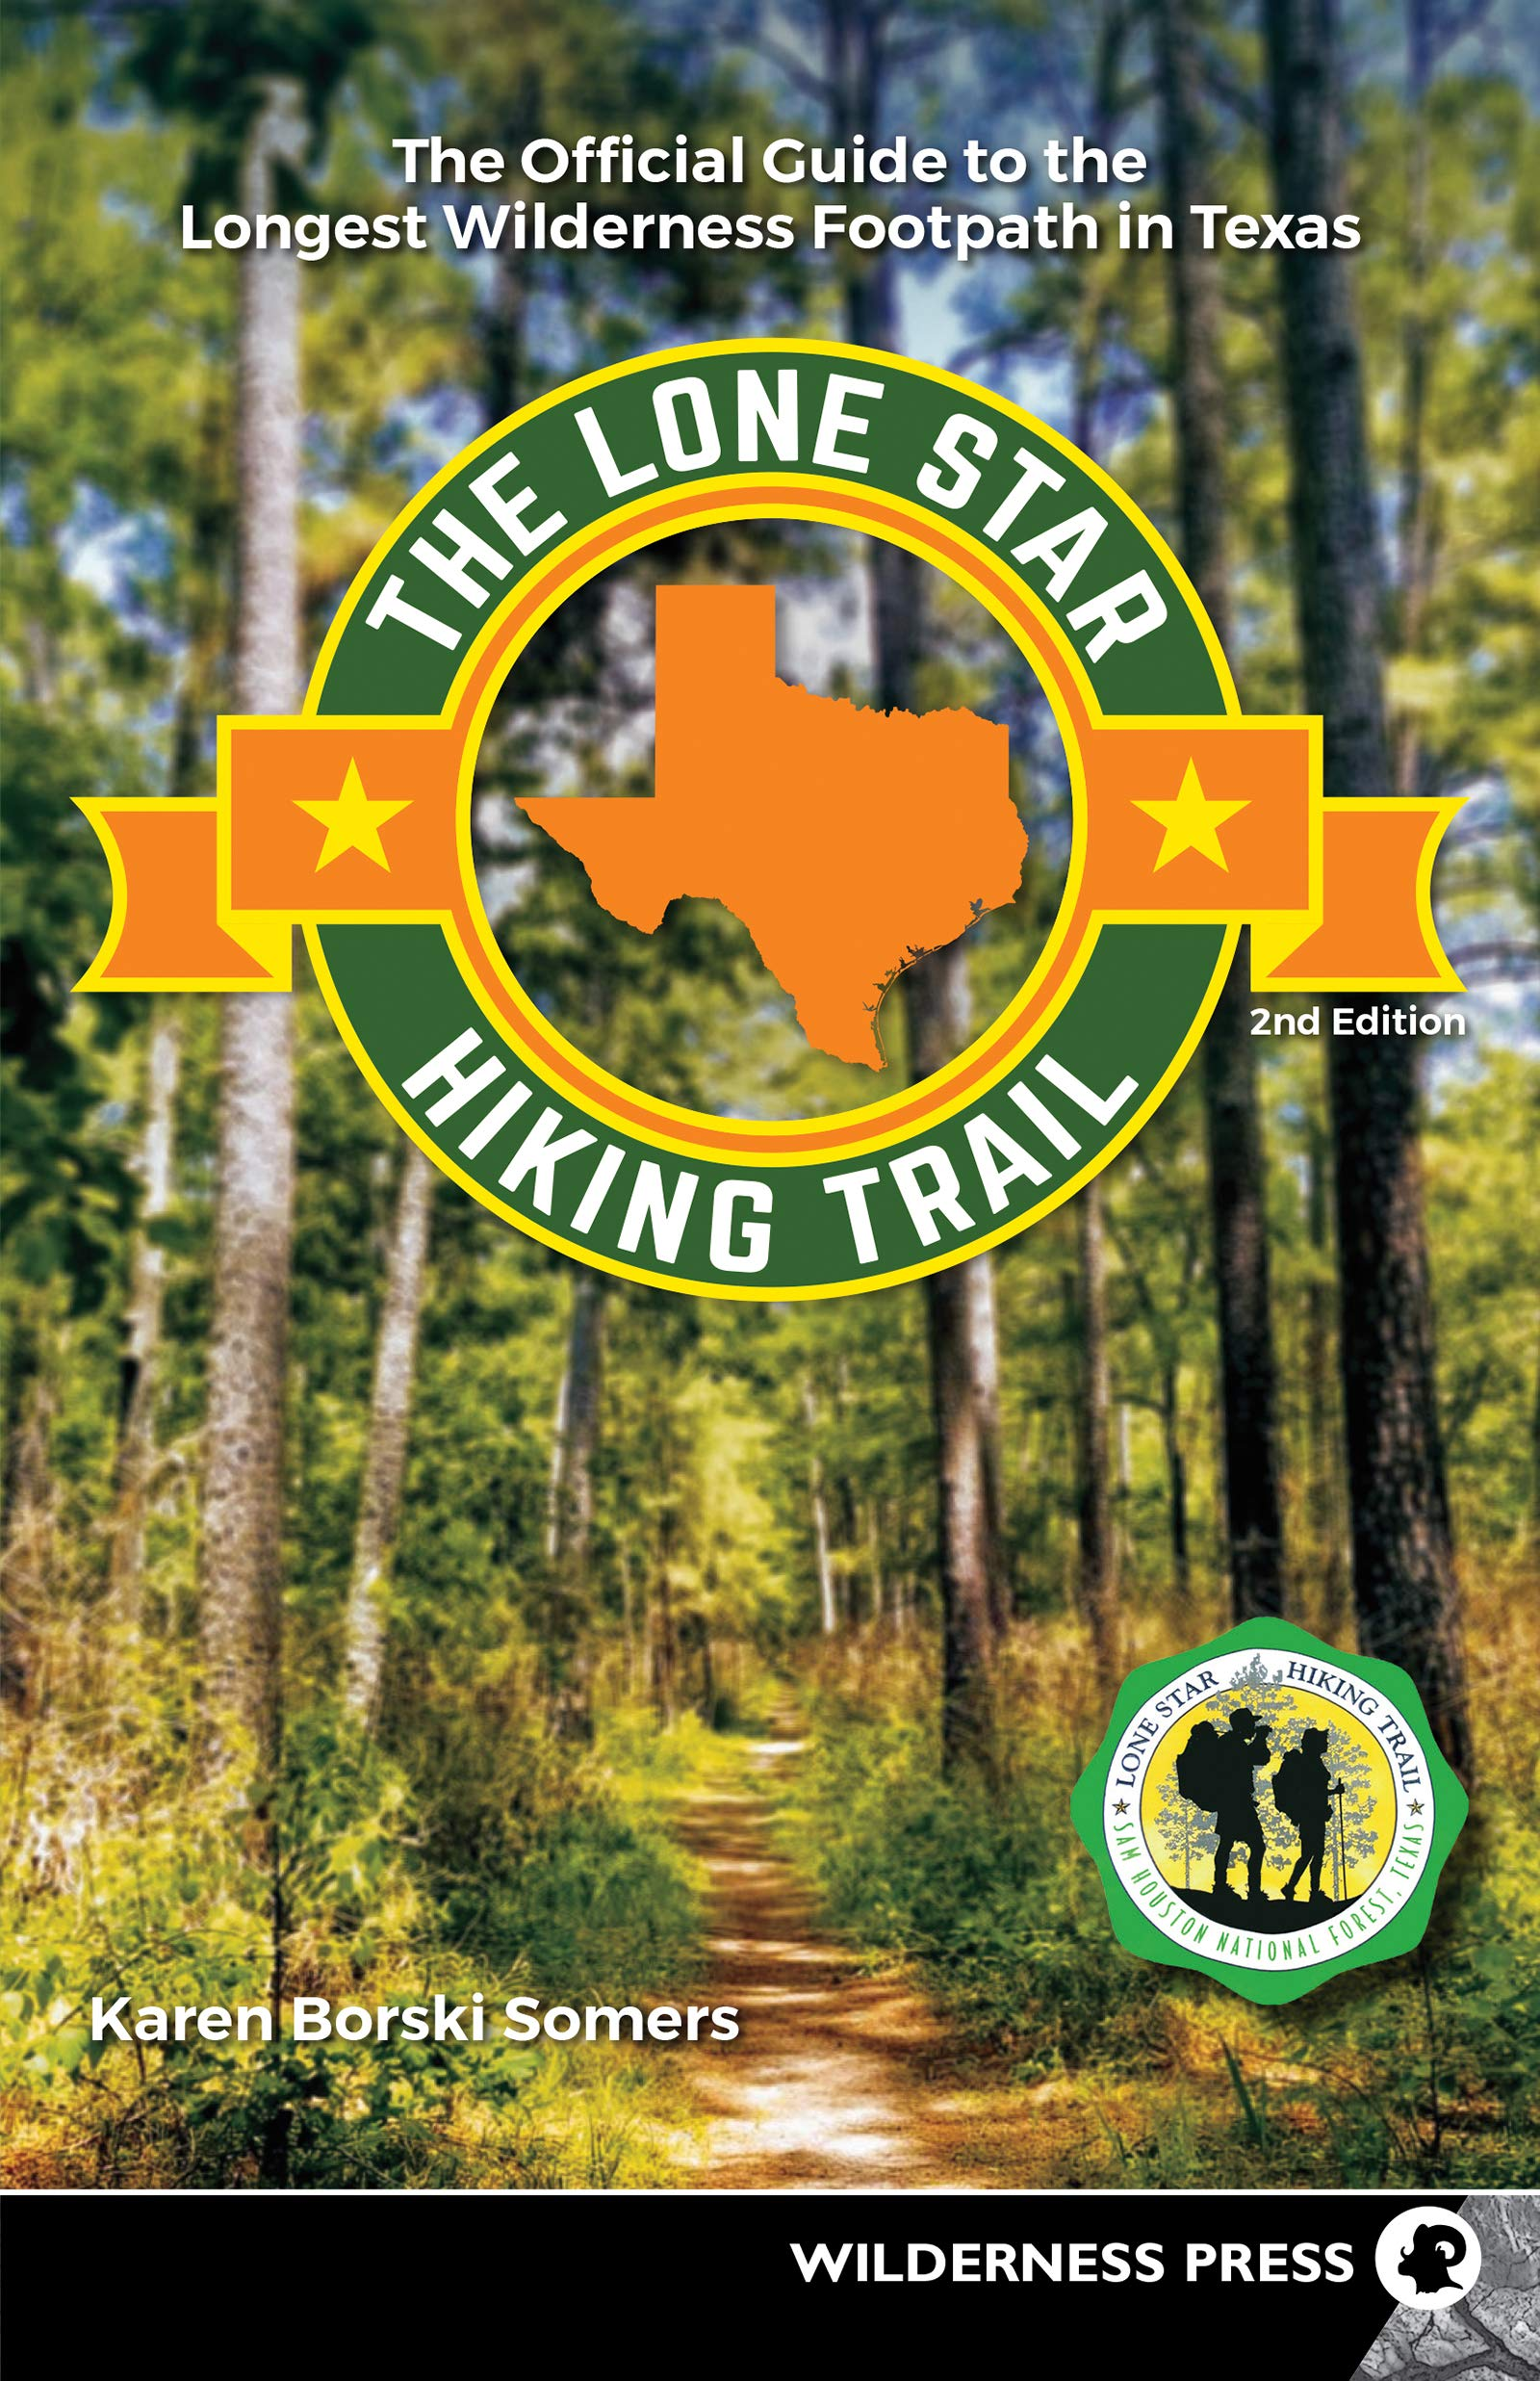 The Lone Star Hiking Trail: The Official Guide to the ... Sam Houston Hiking Trail Map on sam's point trail map, new zealand hike trail map, sam houston tollway map, challenger park houston map, sam houston hunting map, sam houston museum map, cleveland national forest trail map, sam houston parking map, memorial park trail map, sam houston trail park, huntsville state park map, texas hiking map, cagle campground map, sam houston park map, sam houston forest,